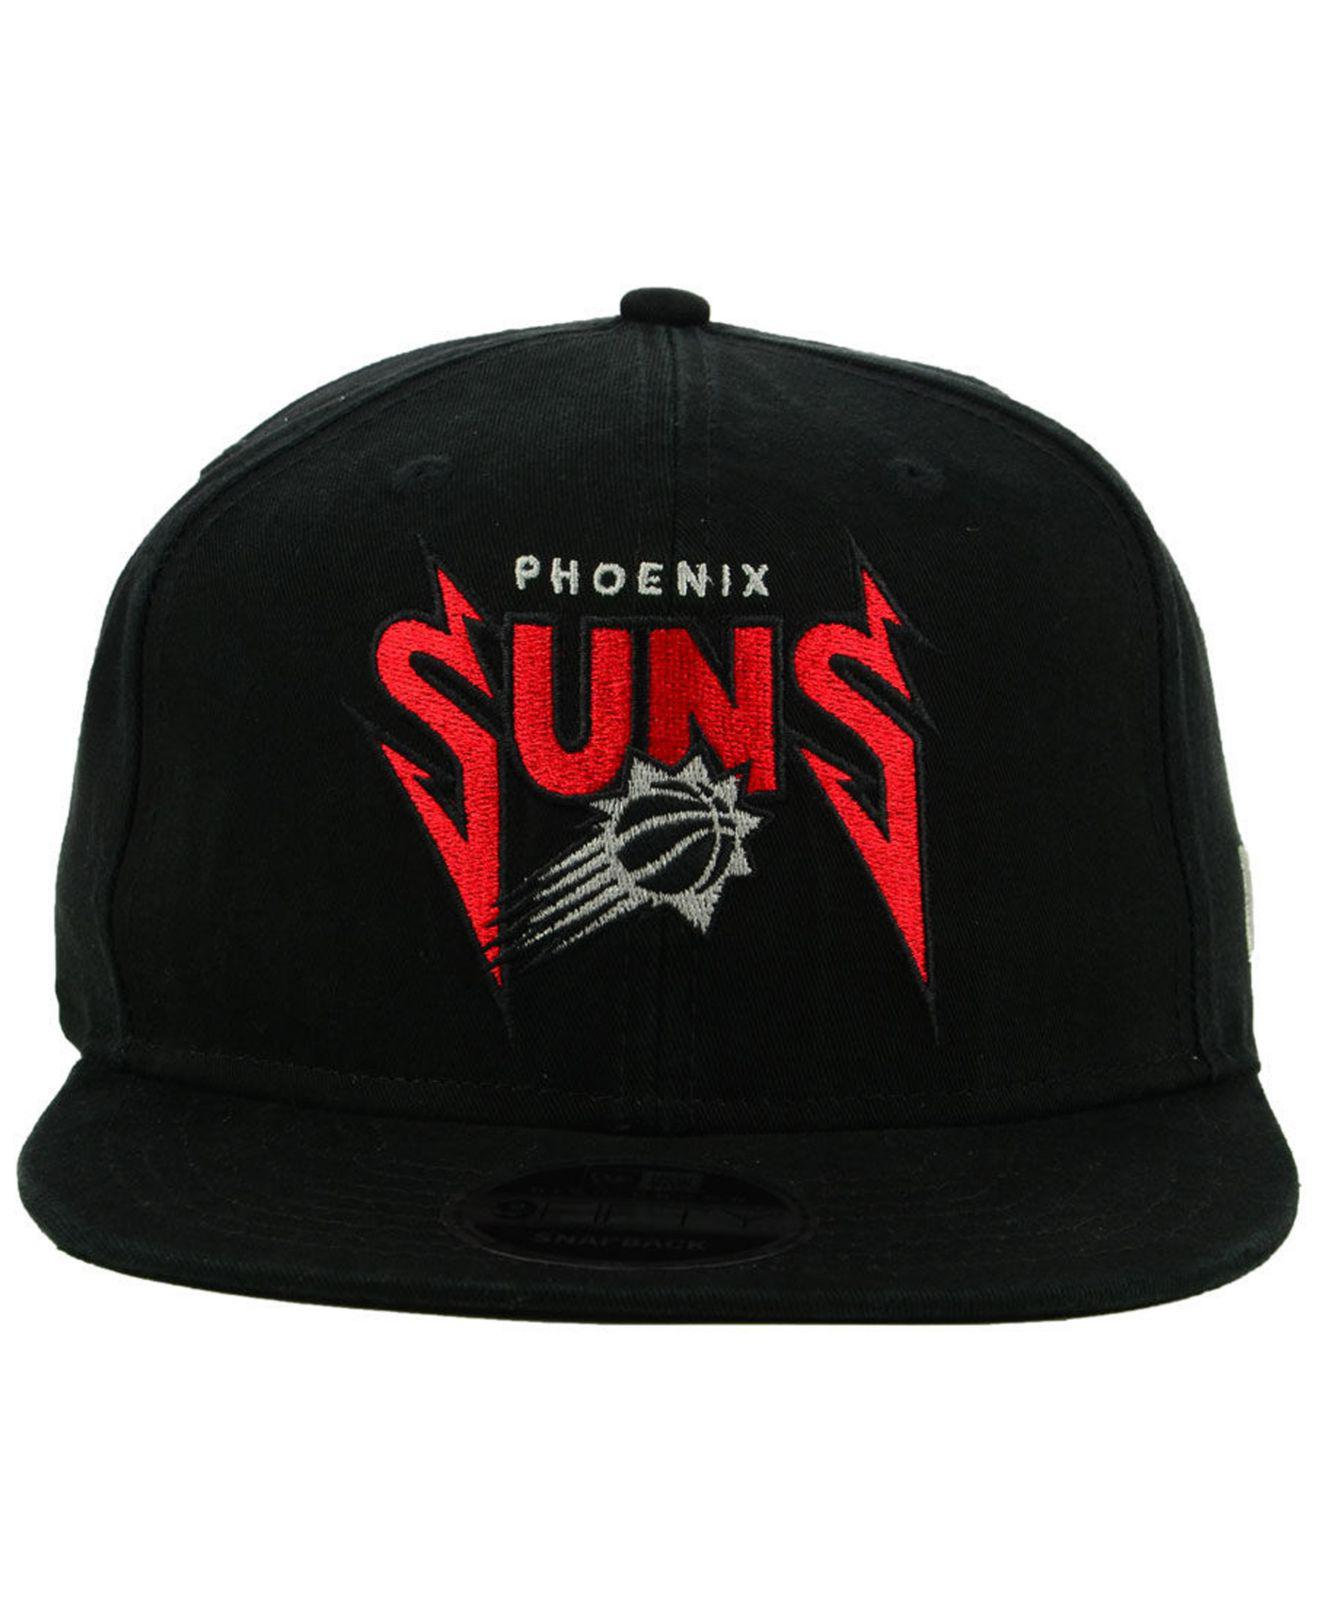 finest selection 23ae5 cd473 Lyst - KTZ Phoenix Suns 90s Throwback Groupie 9fifty Snapback Cap in Black  for Men